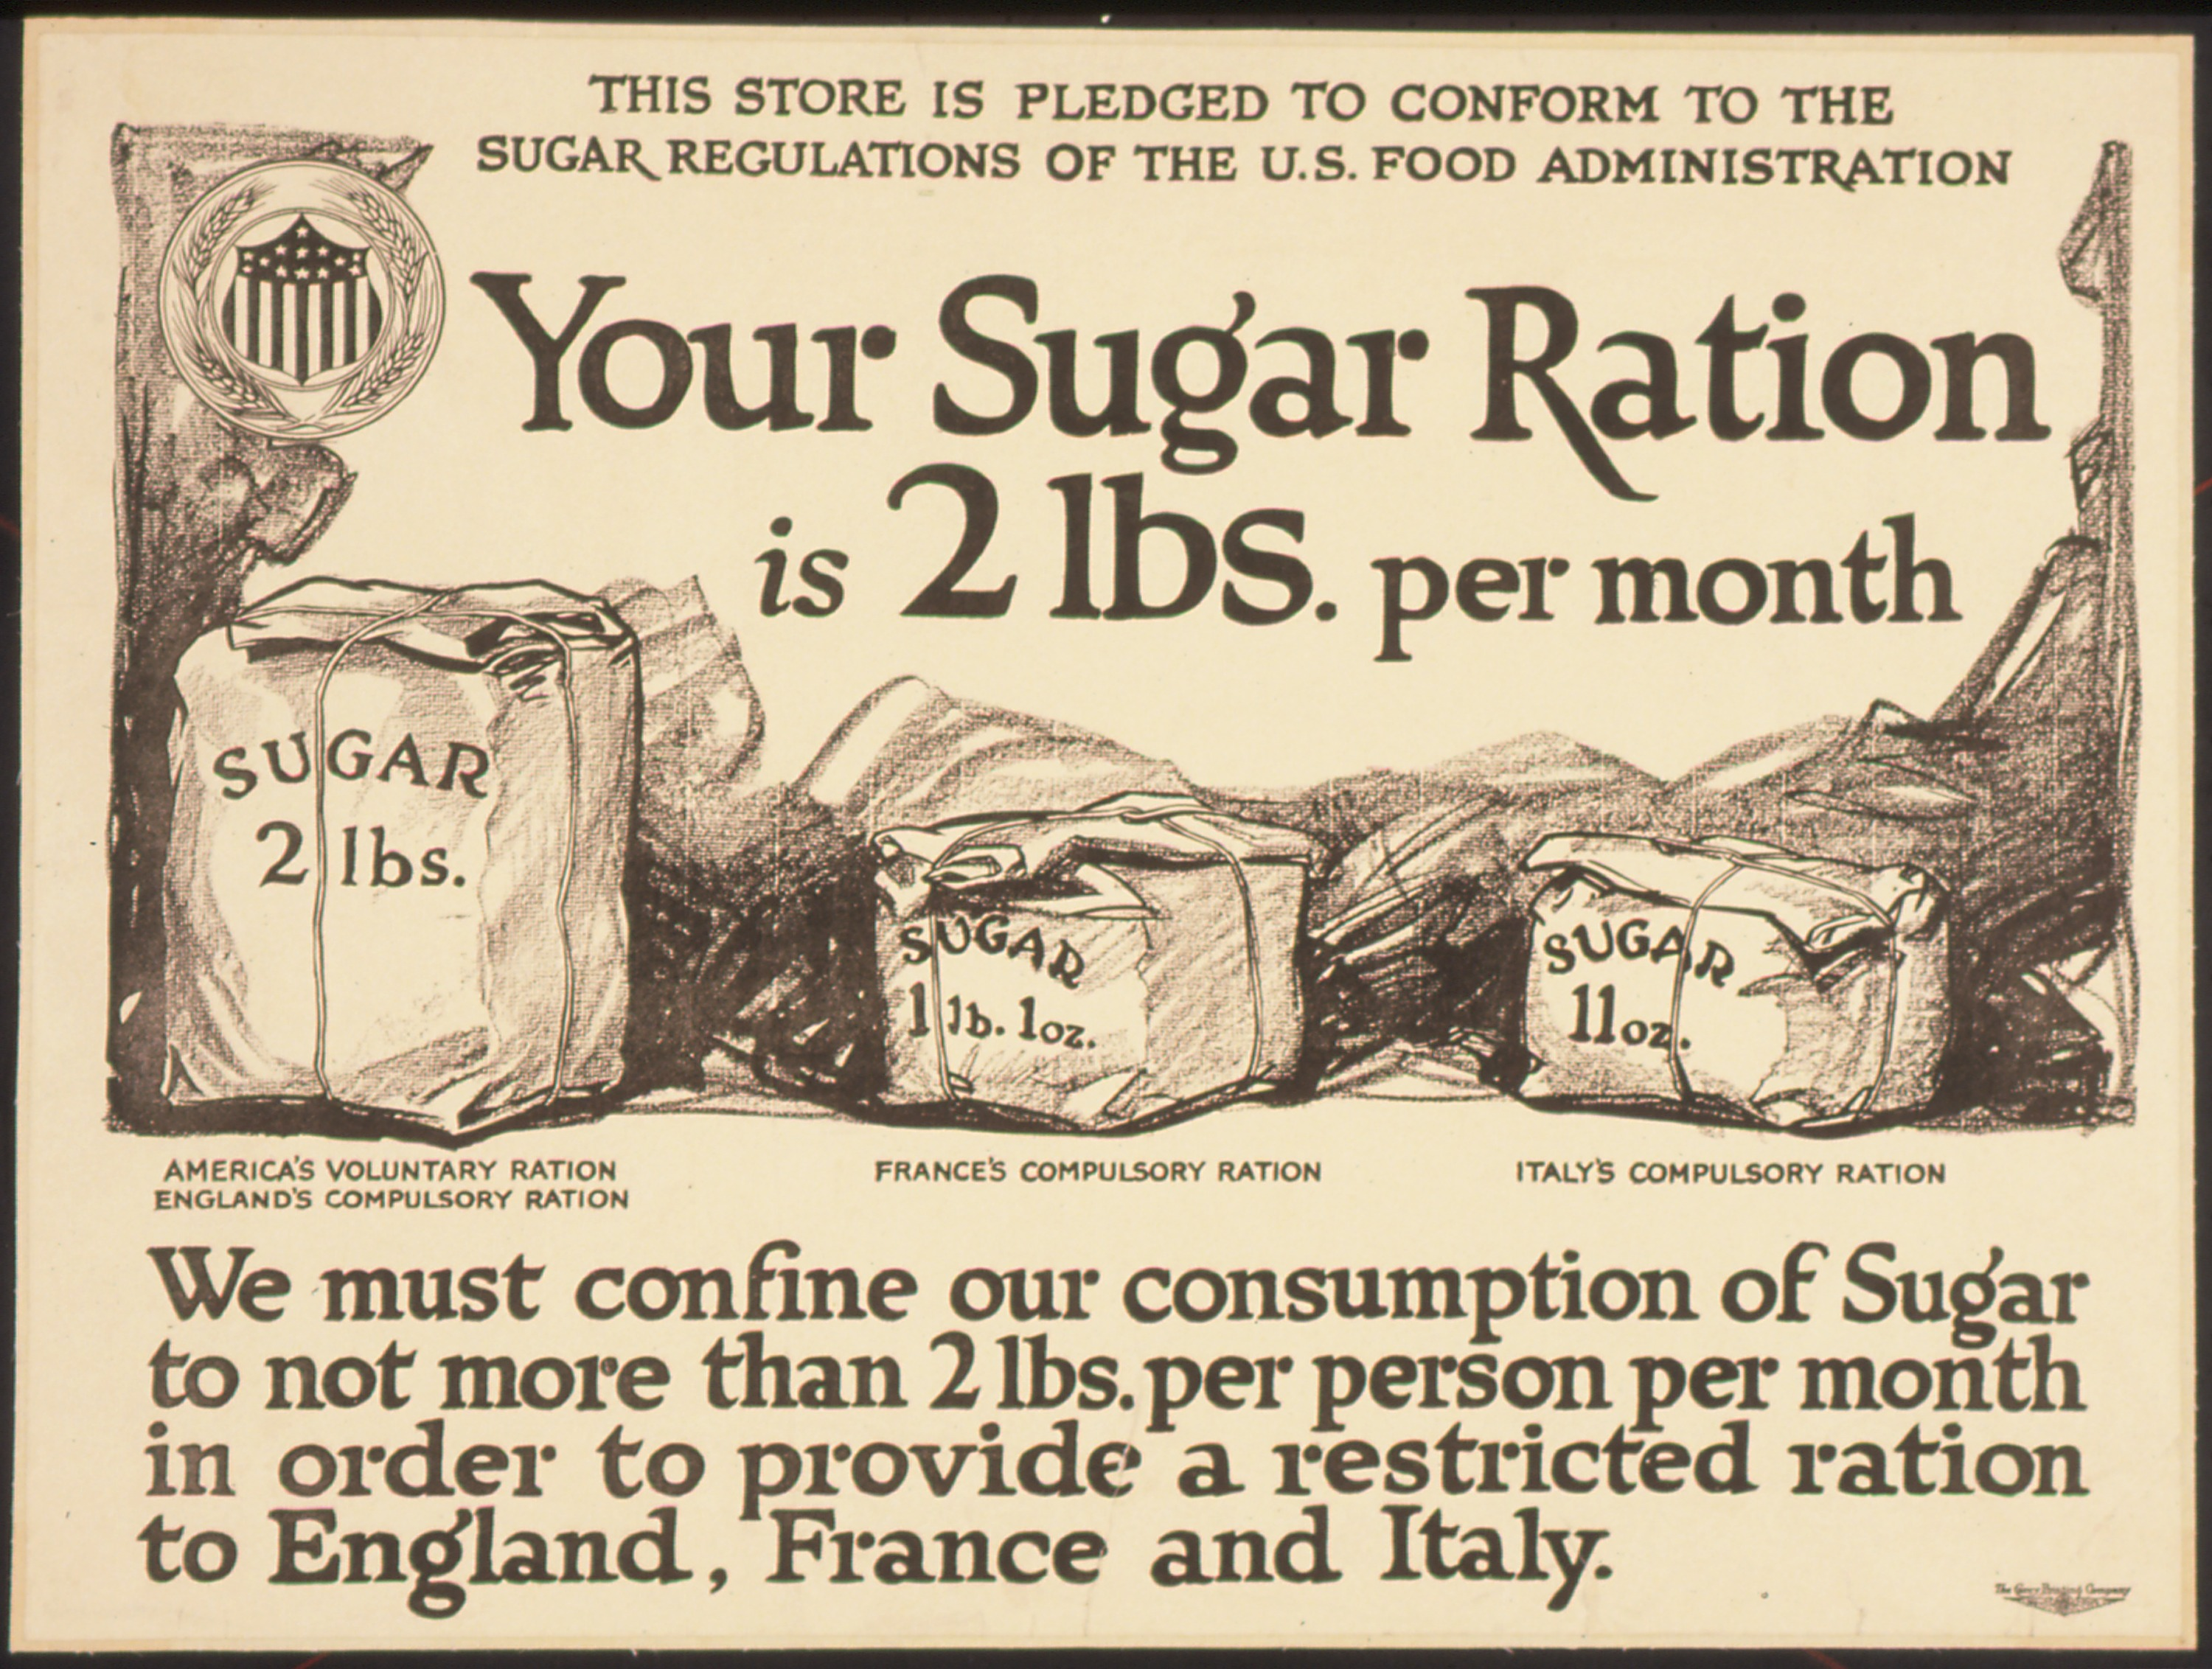 Halloween Fun Fact: World War II caused sugar rationing, which stalled trick-or-treating for a number of years.